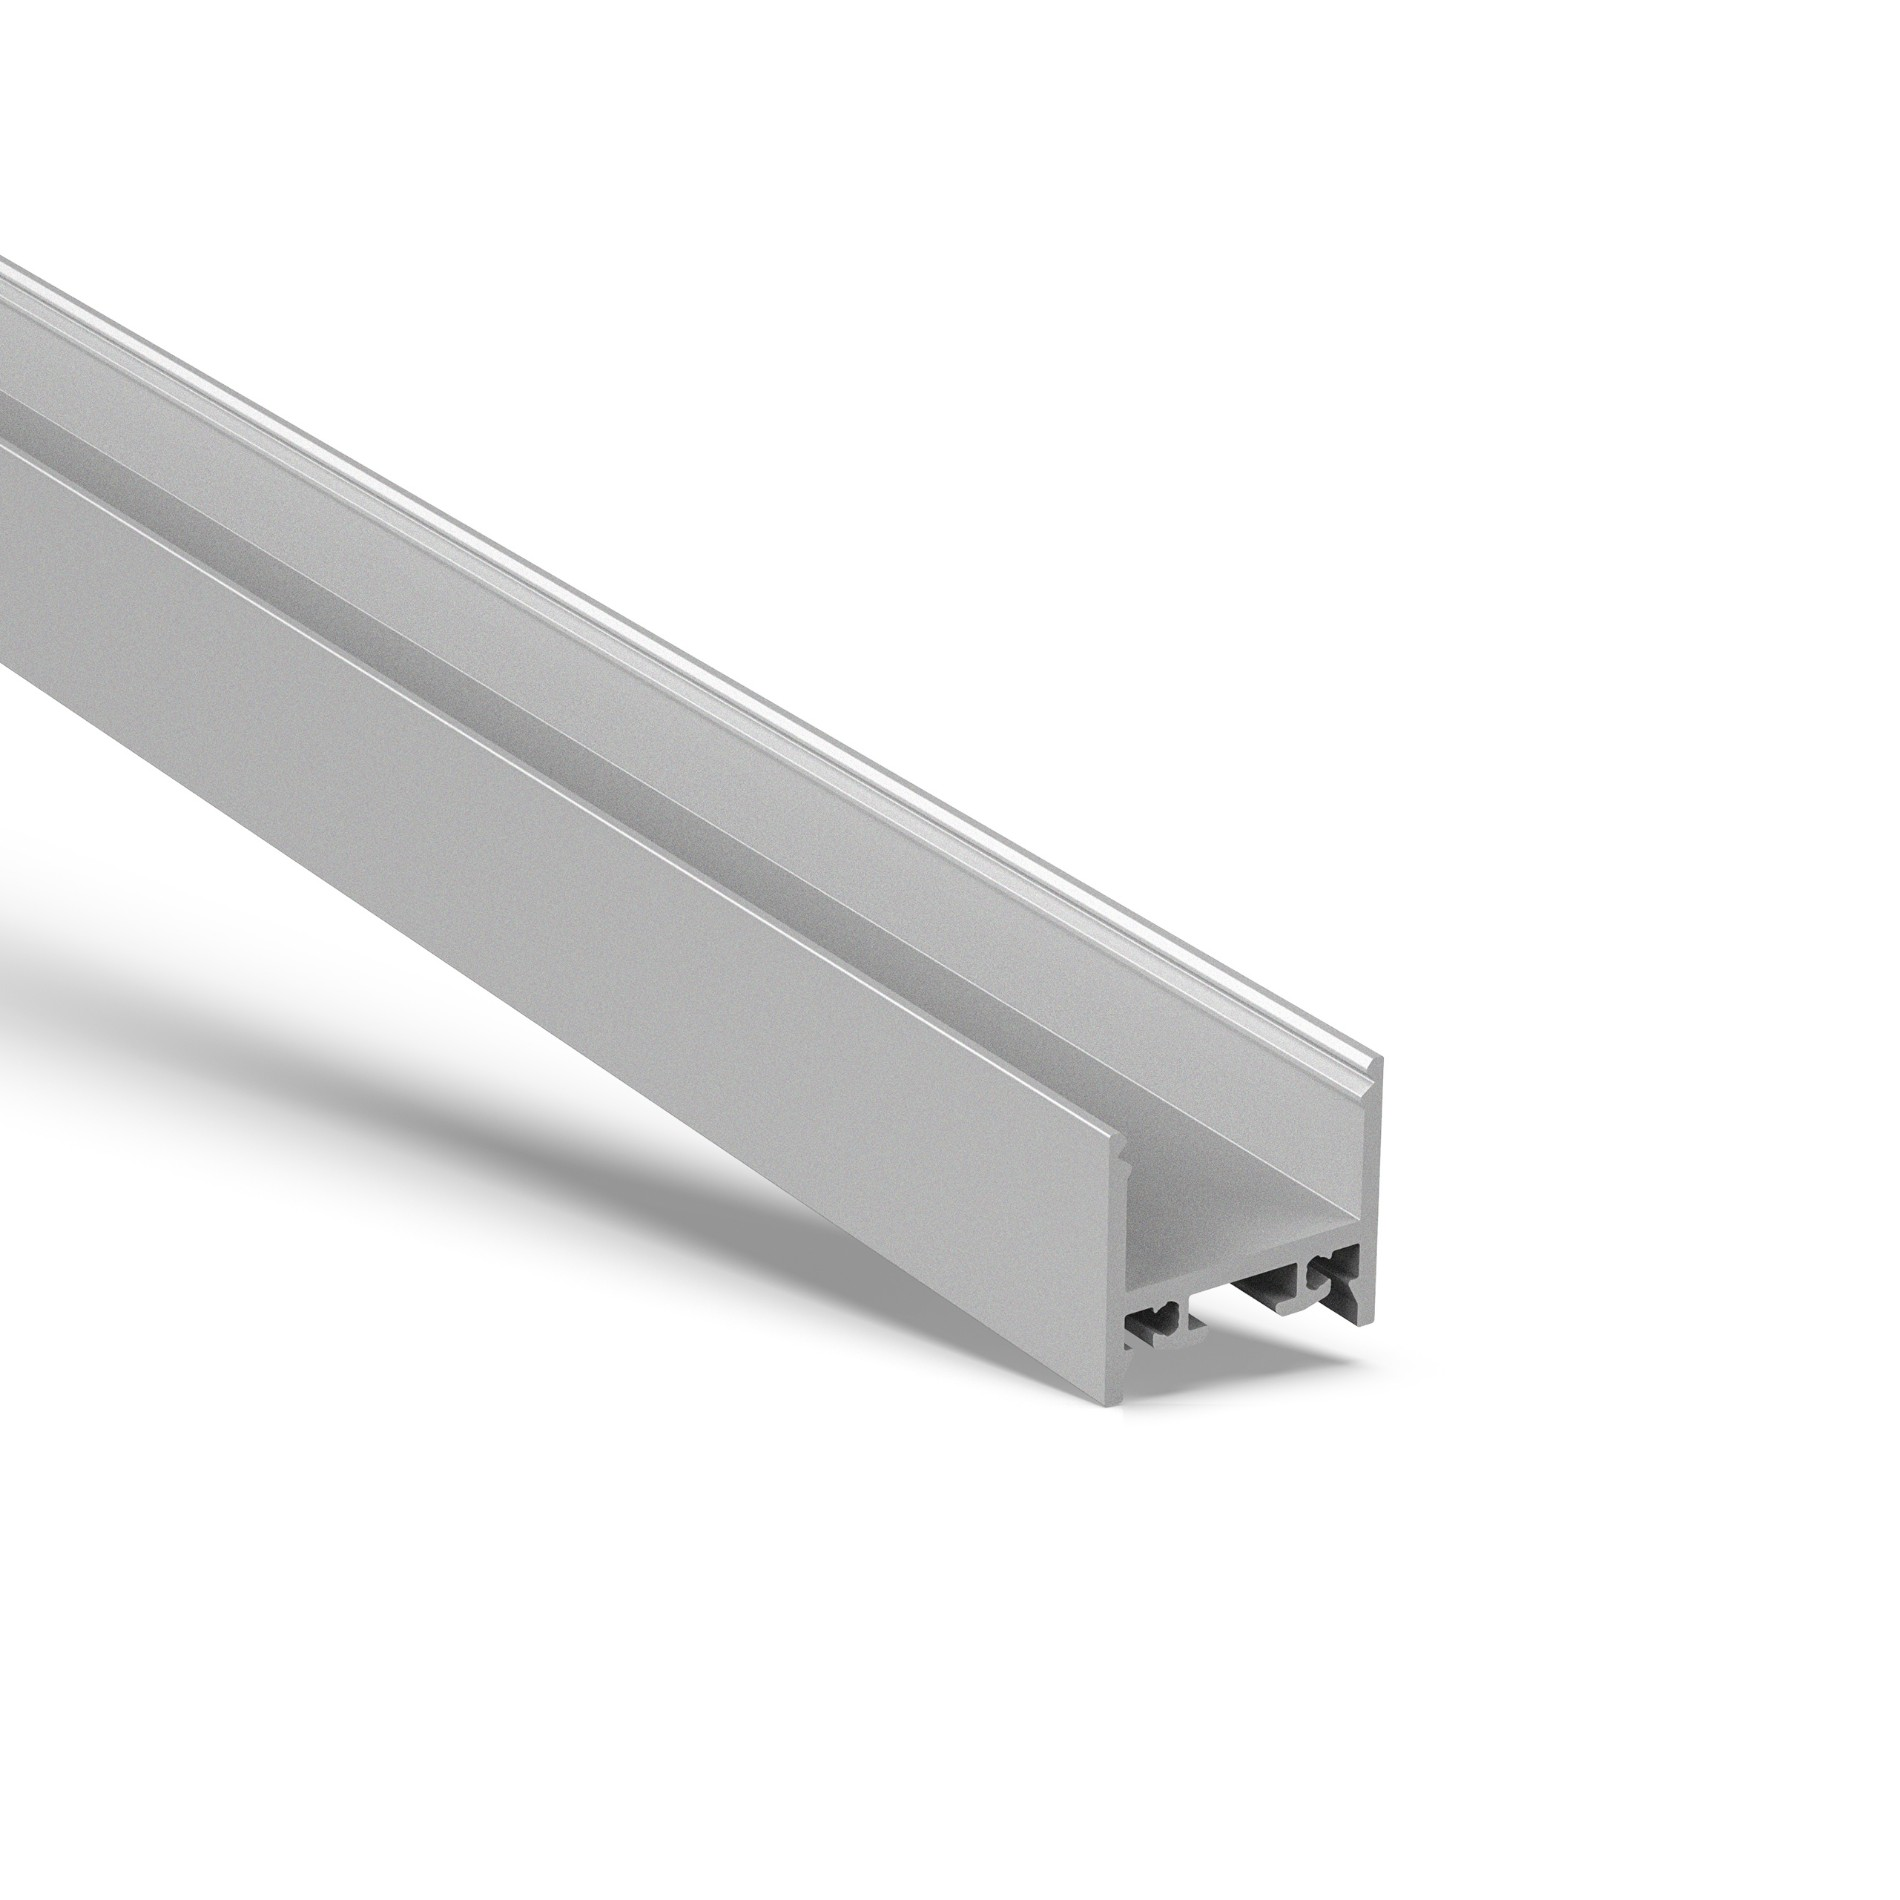 AT16-11 Surface square led profile 19.5x17.35mm